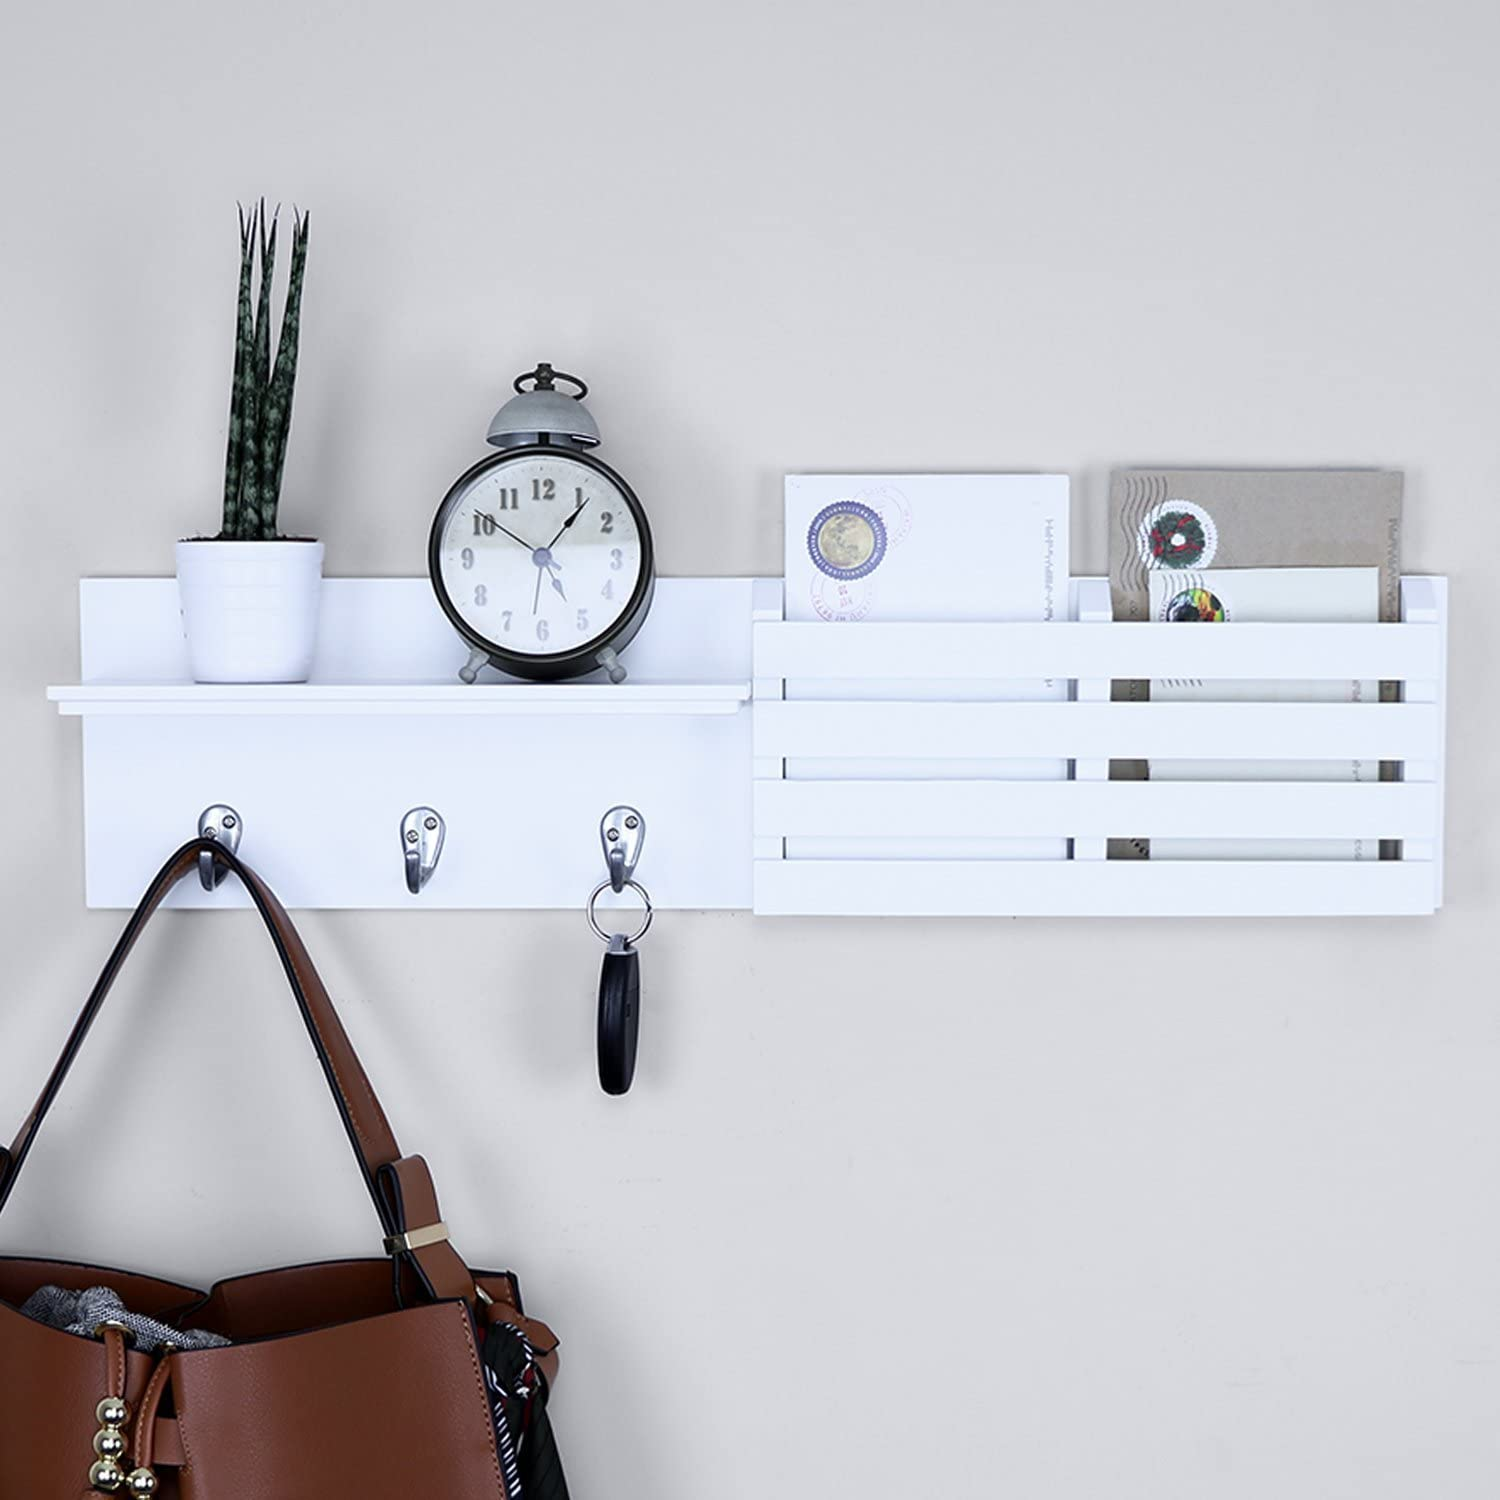 Amazon Com Ballucci Mail Holder And Coat Key Rack Wall Shelf With 3 Hooks 24 X 6 White Home Kitchen